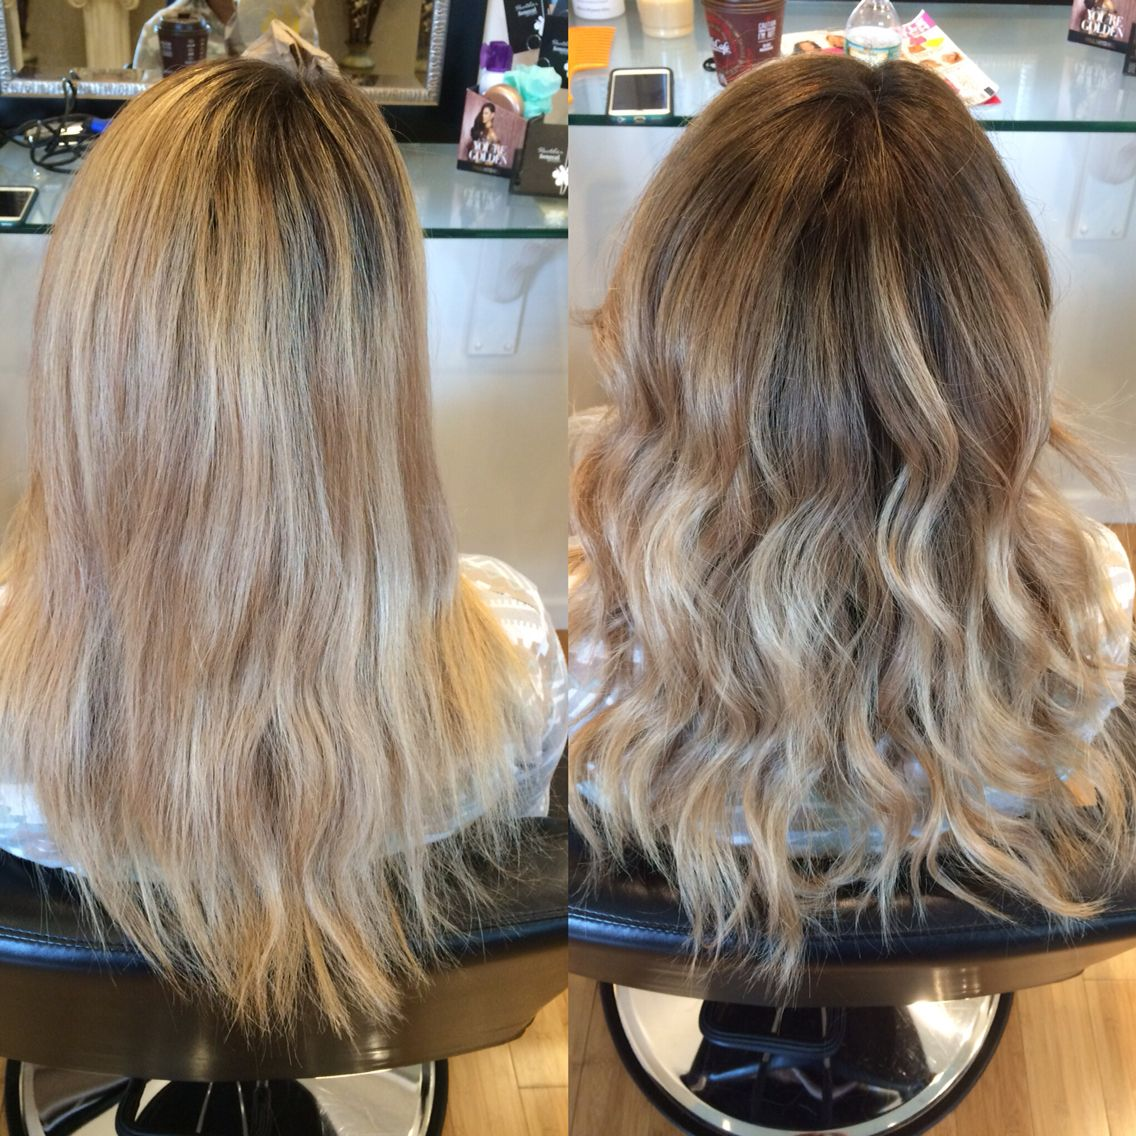 37+ Reverse balayage to blend roots ideas